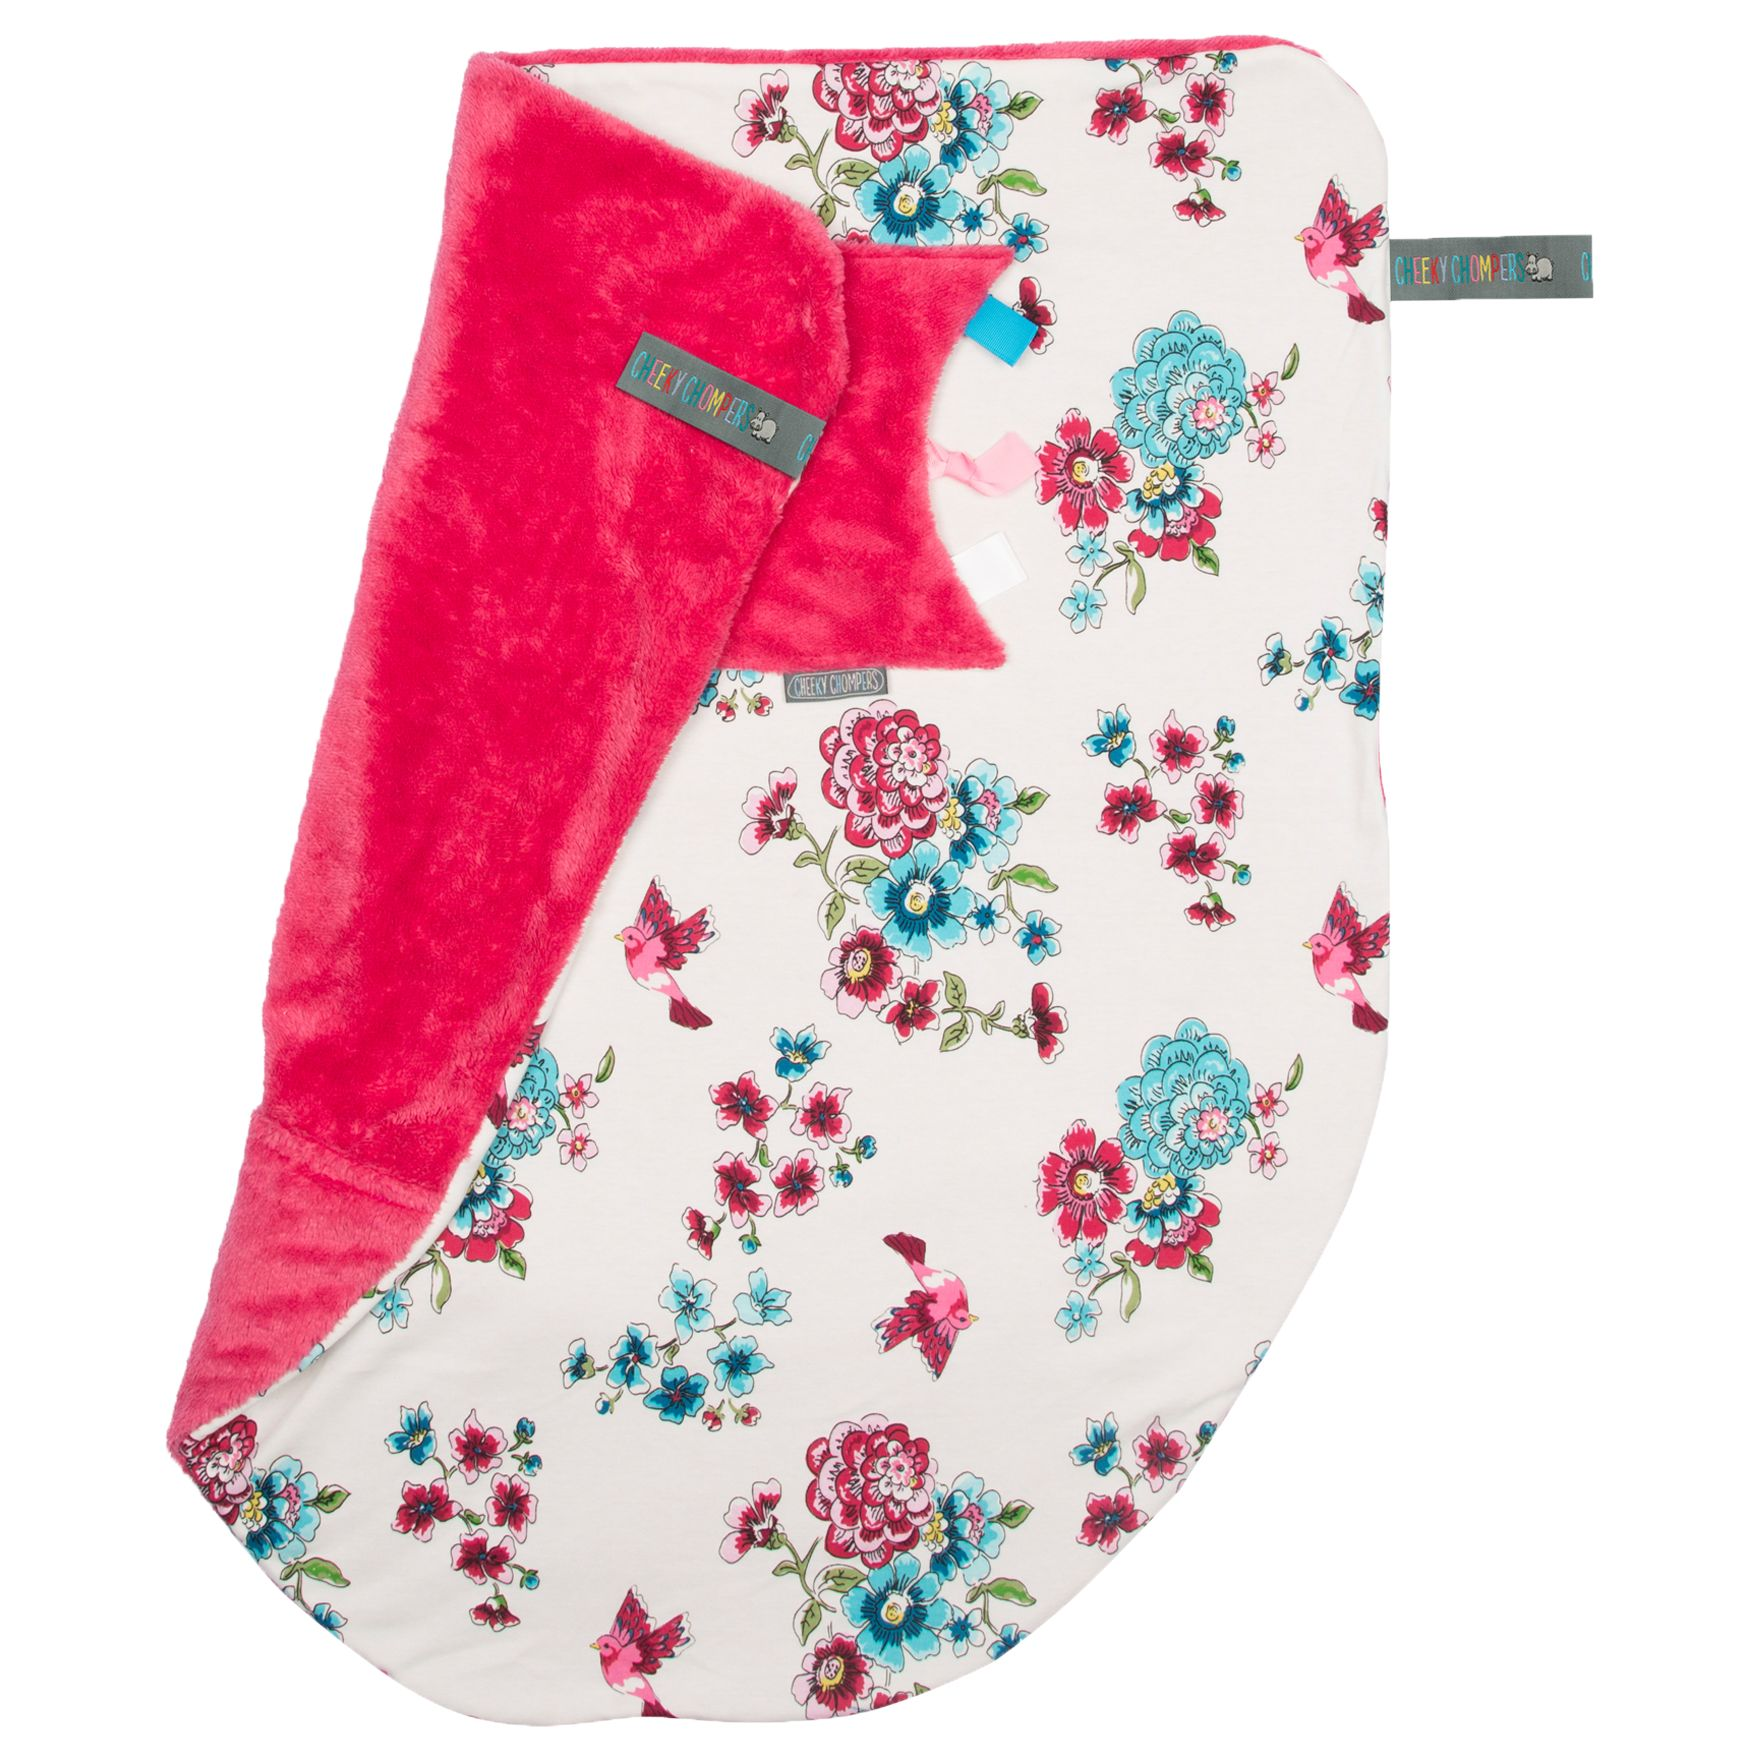 Cheeky Chompers Cheeky Chompers Baby Anna Floral Blanket, Cream/Multi